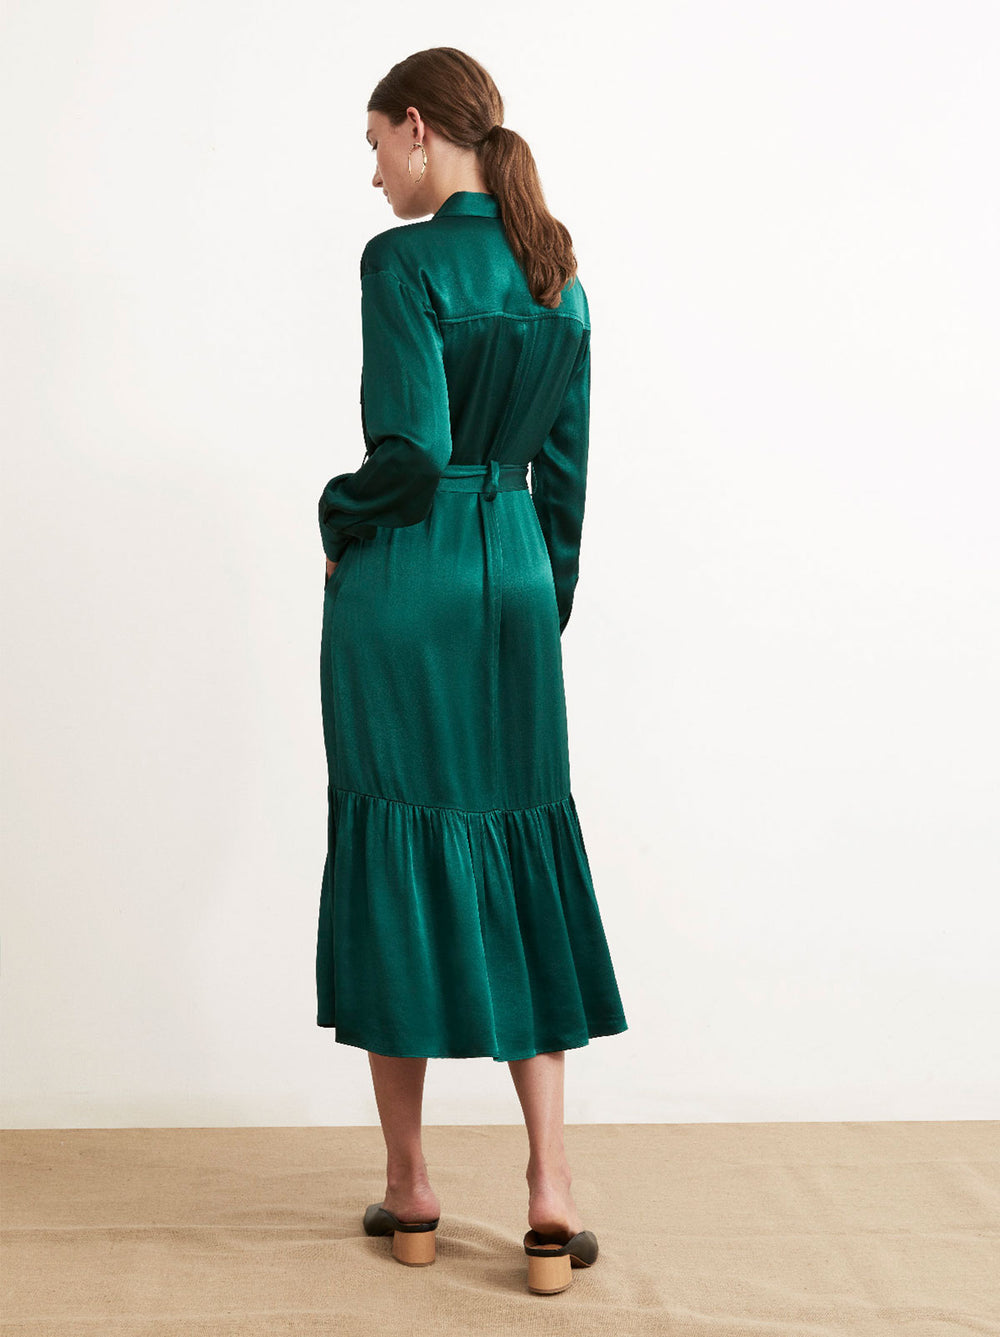 Eloise Green Satin Belted Shirt Dress by KITRI Studio